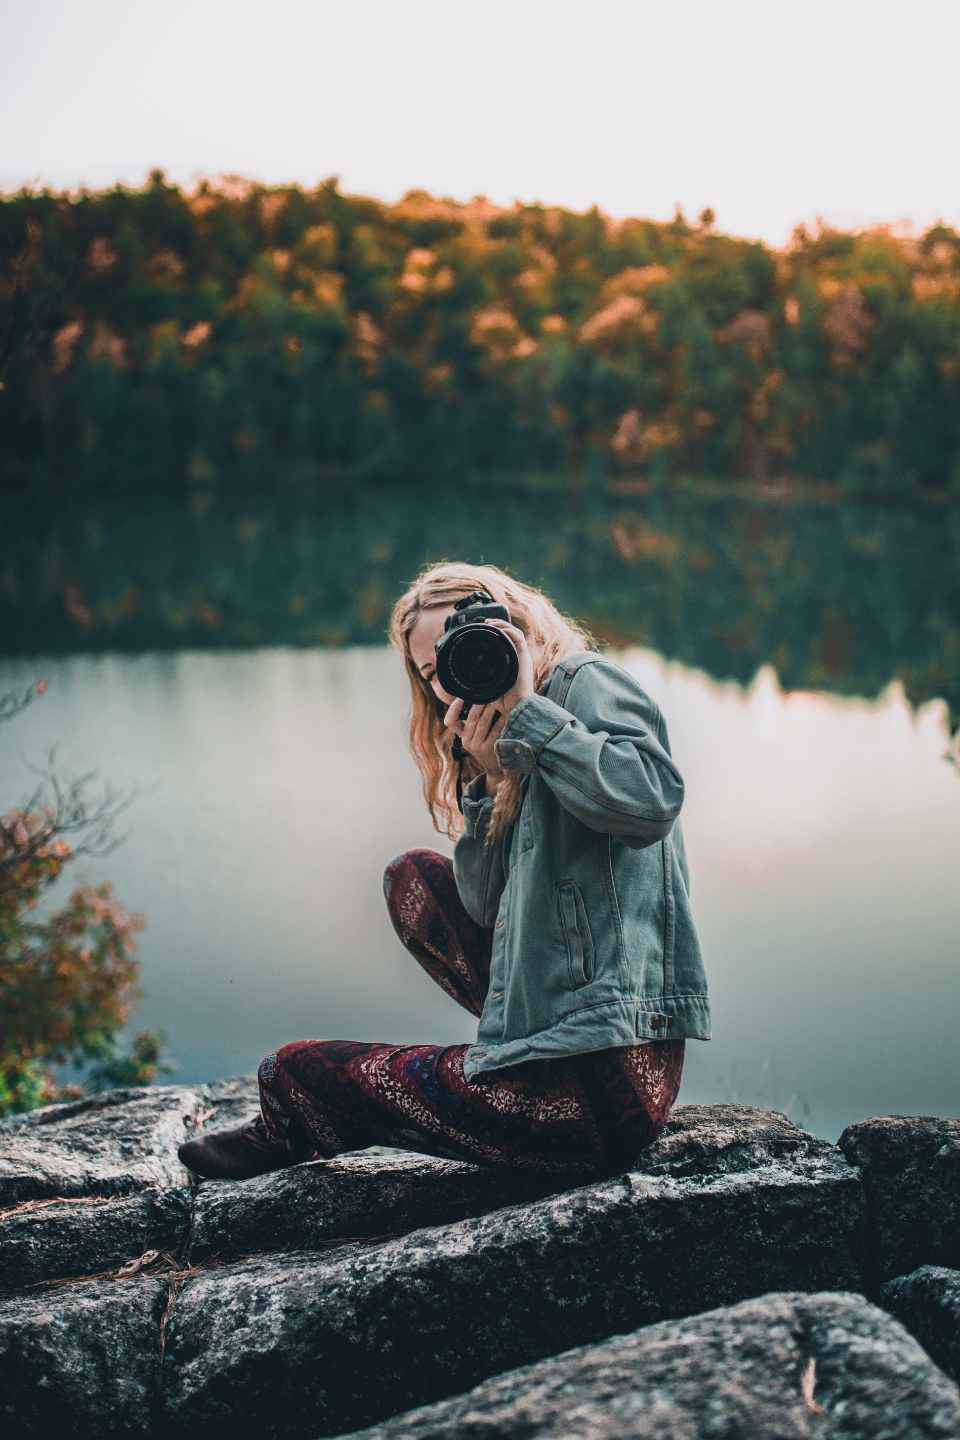 girl blonde cute pretty landscape earth ottawa ontario travel forest fall photographer photograph camera canon lens cliff female woman lady lake water nature